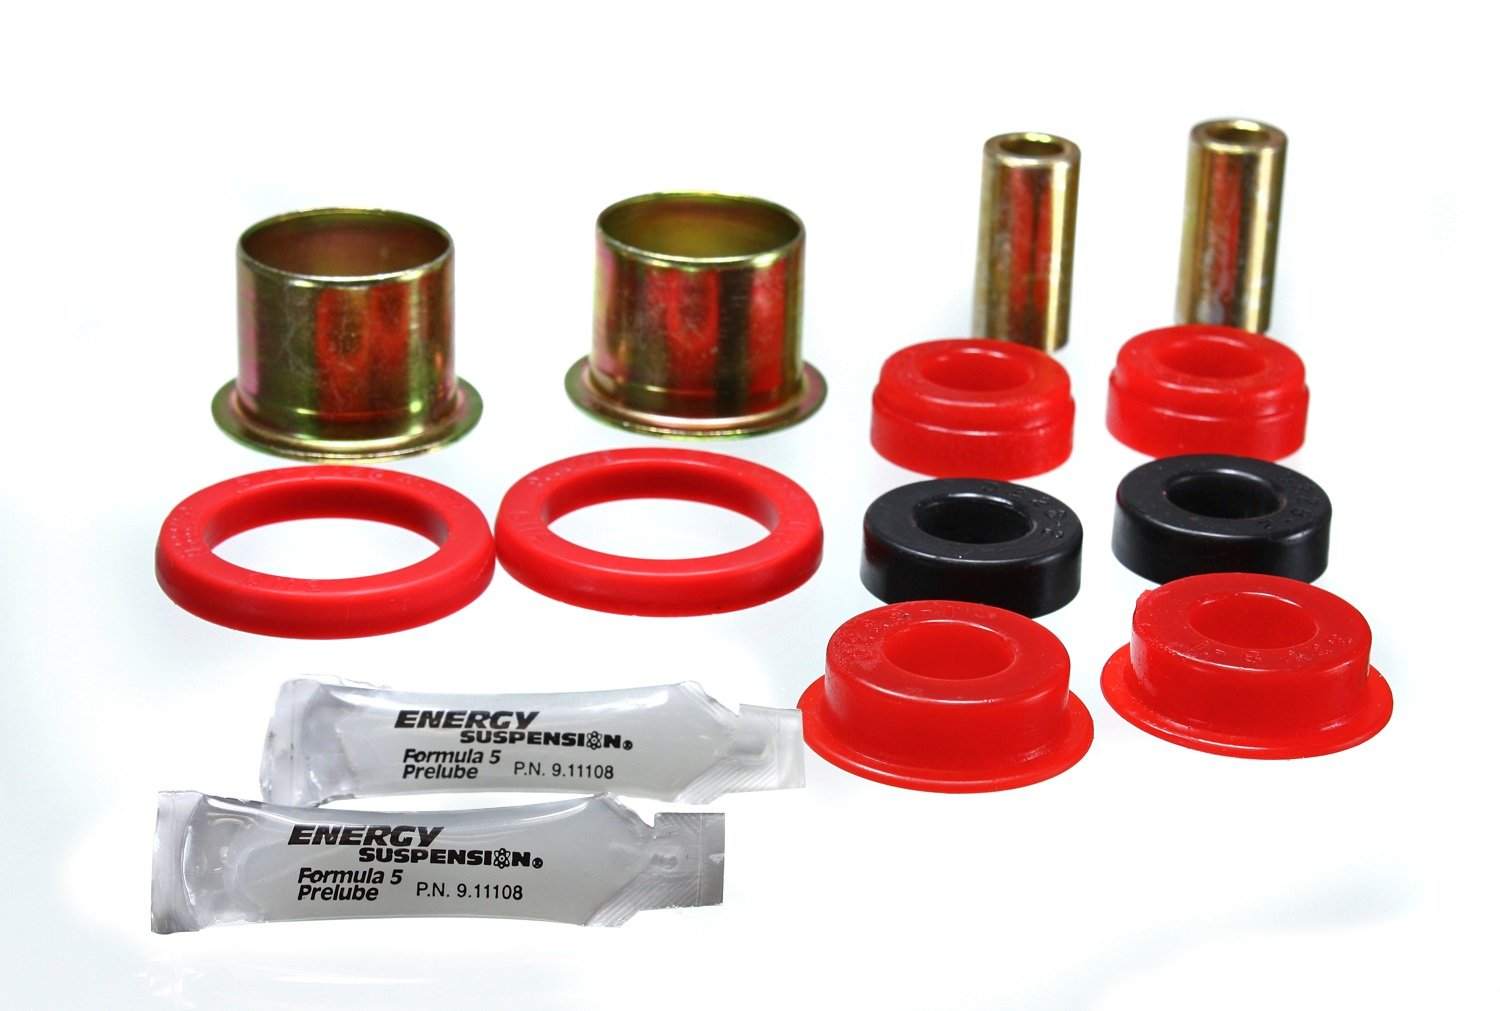 Energy Suspension 4.3133R Central Arm Bushings for Ford